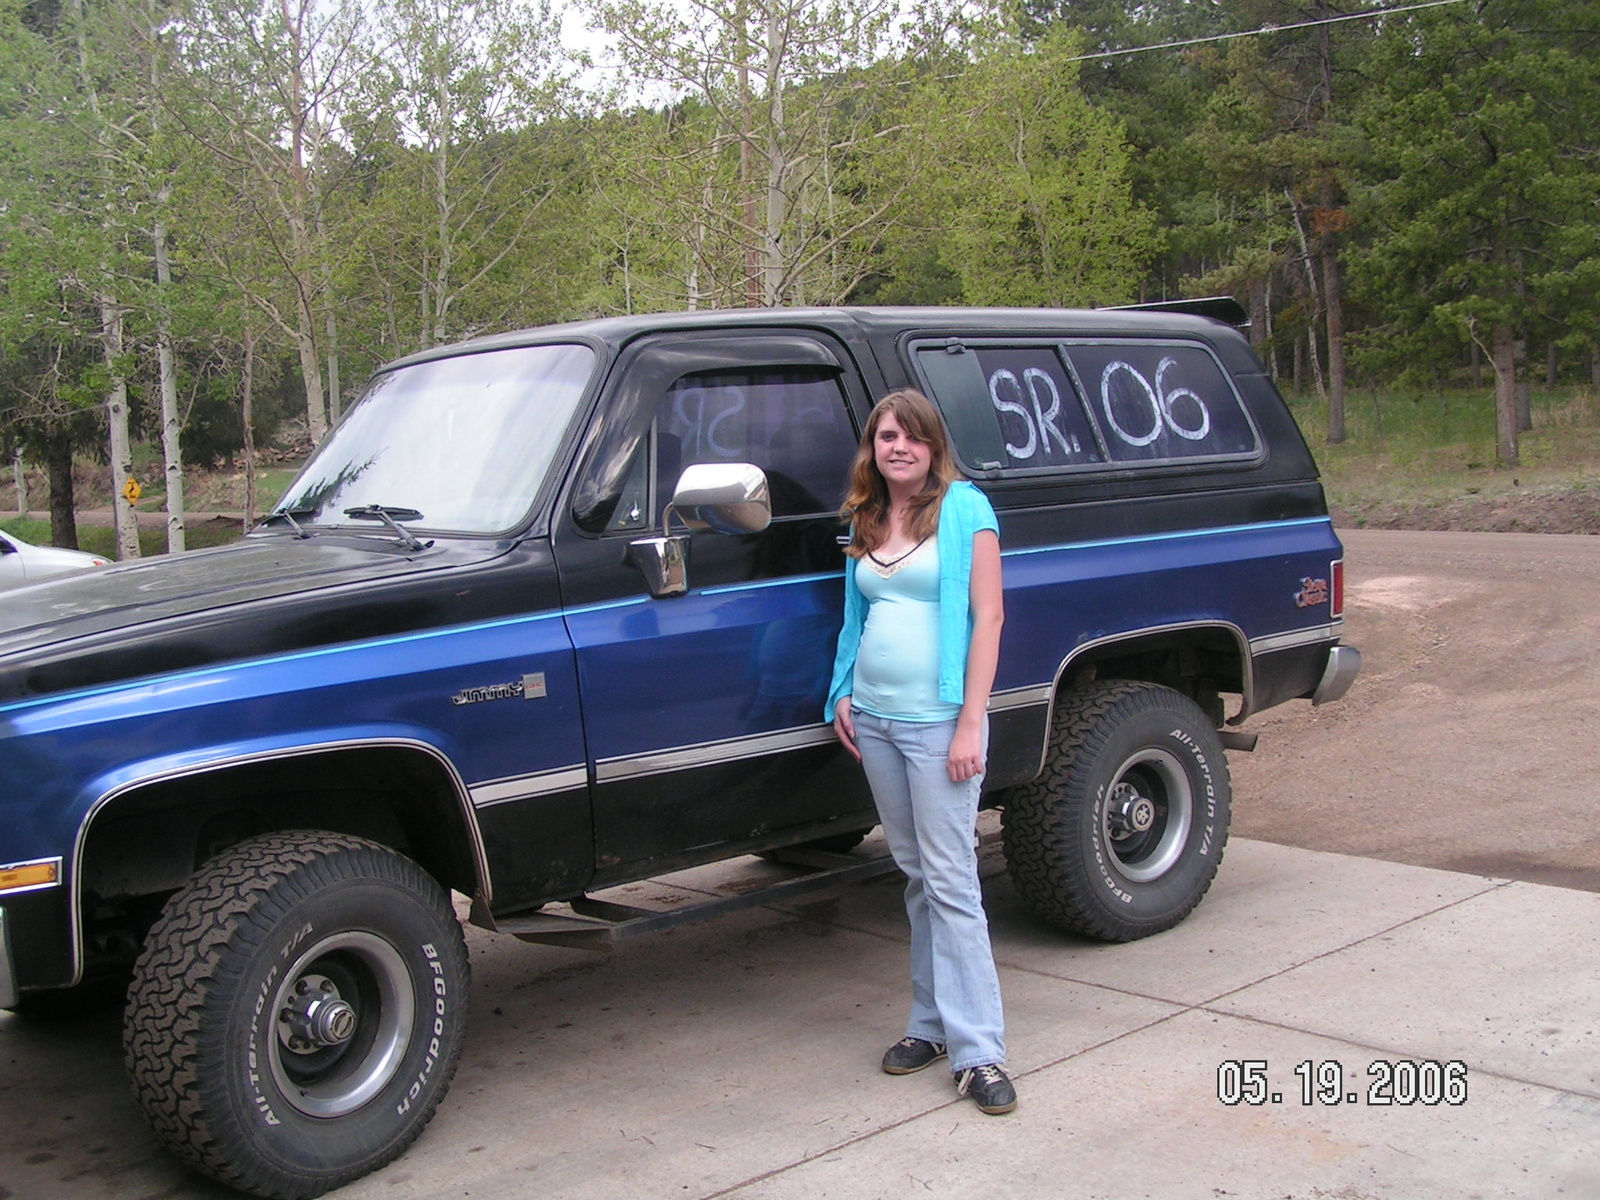 1985 Gmc Jimmy Information And Photos Momentcar 1988 Sierra 1500 Wiring Diagram Free Engine Image For User 1